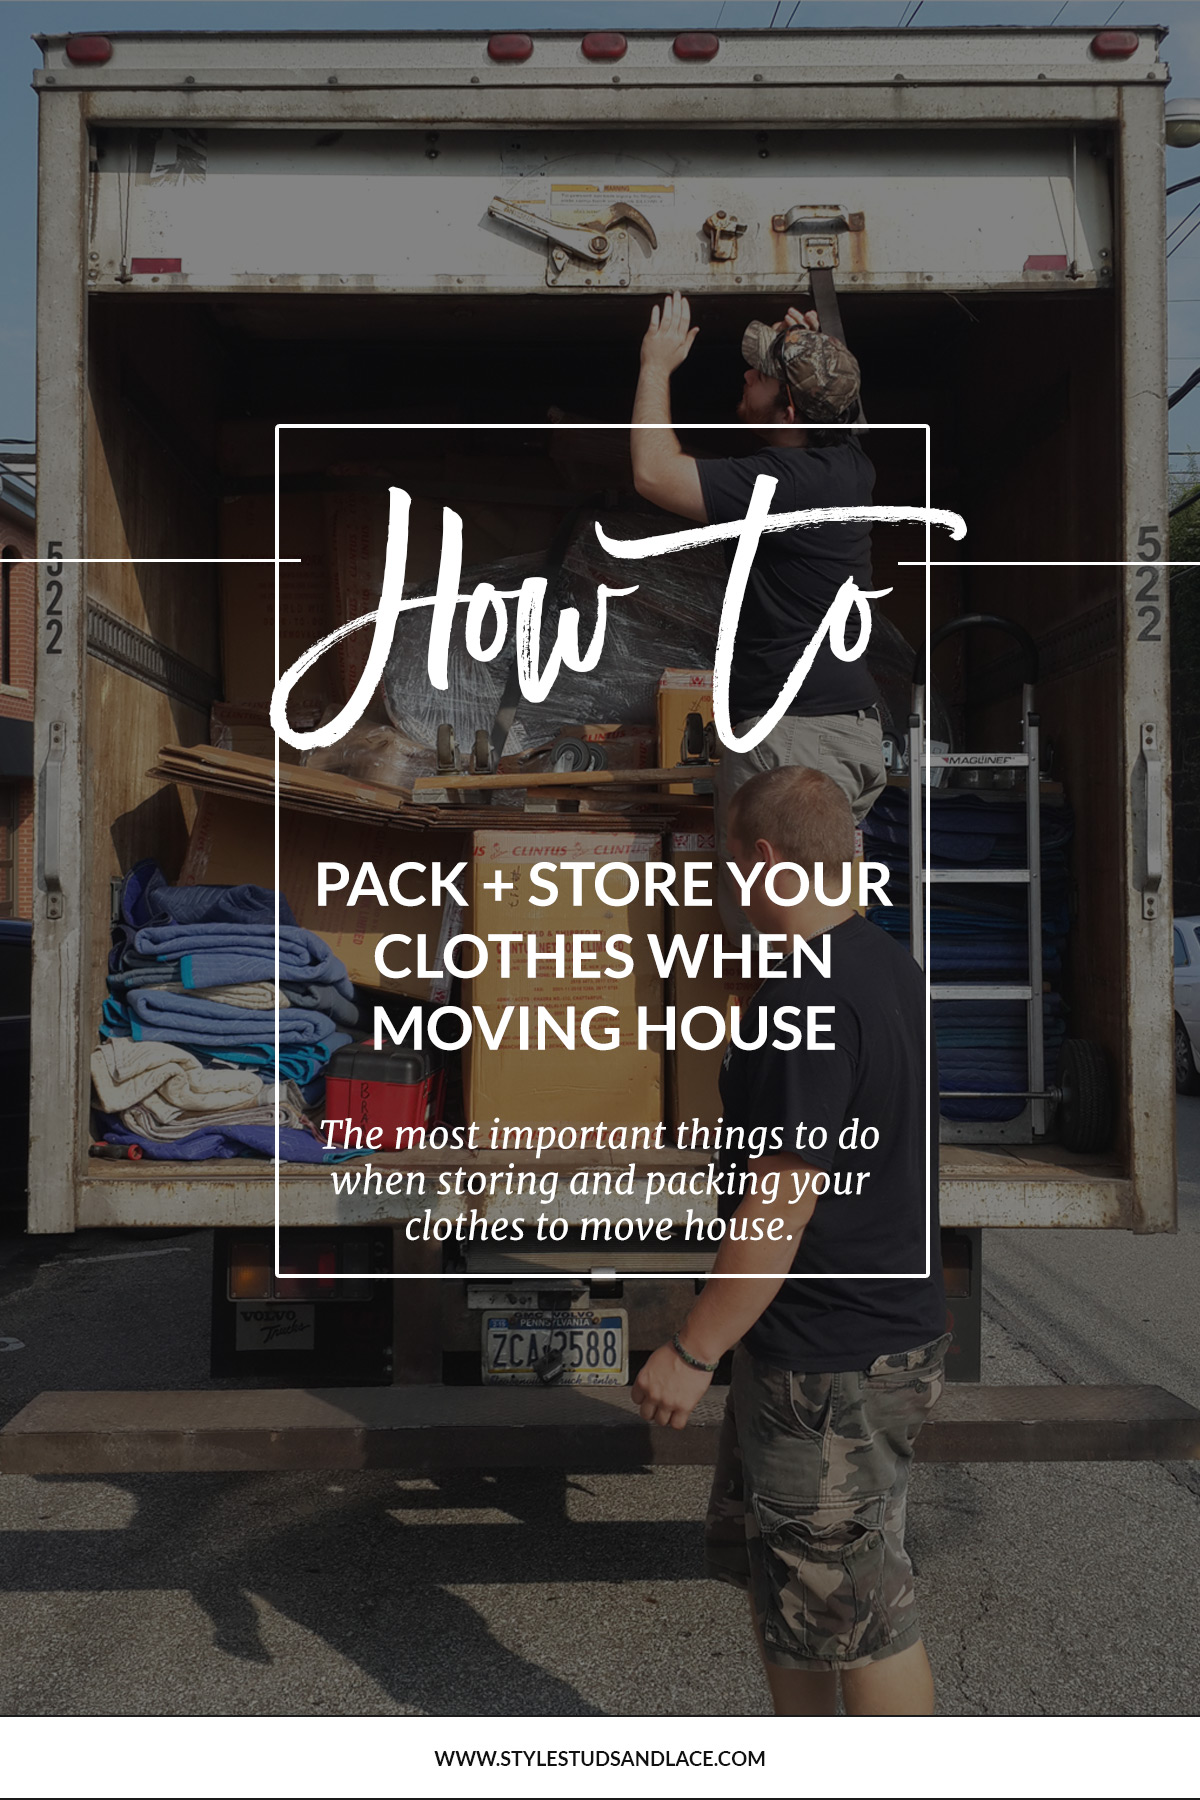 3 things you must do when prepping, packing and storing your clothes to move house | How best to look after and pack your clothing when you move house